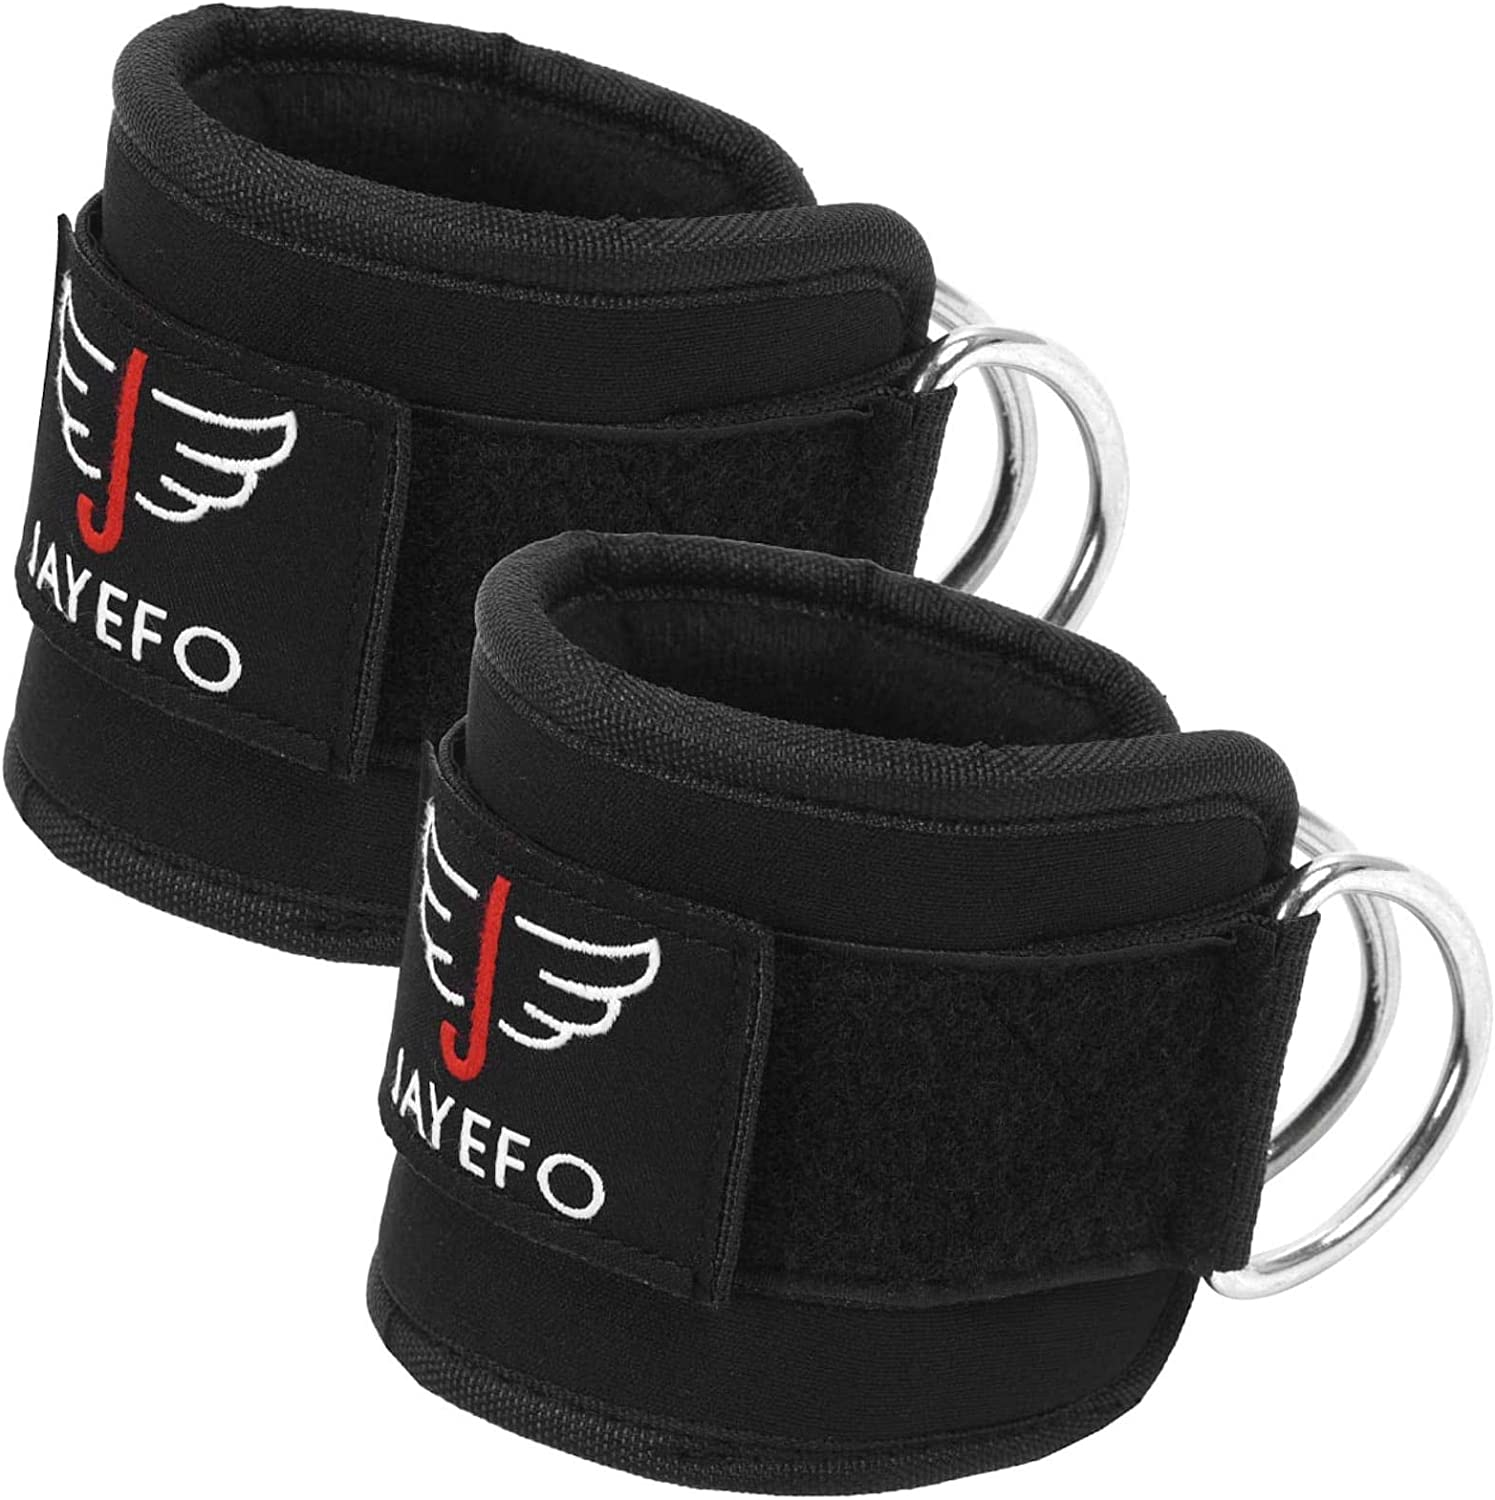 Jayefo Ankle Straps Padded for Cable Machine Attachment Leg Kickback Pulley Workout{Pair} Ankle Cuffs for Hips Glutes Workout for Women /& Men Adjustable Quads Abs Hamstrings